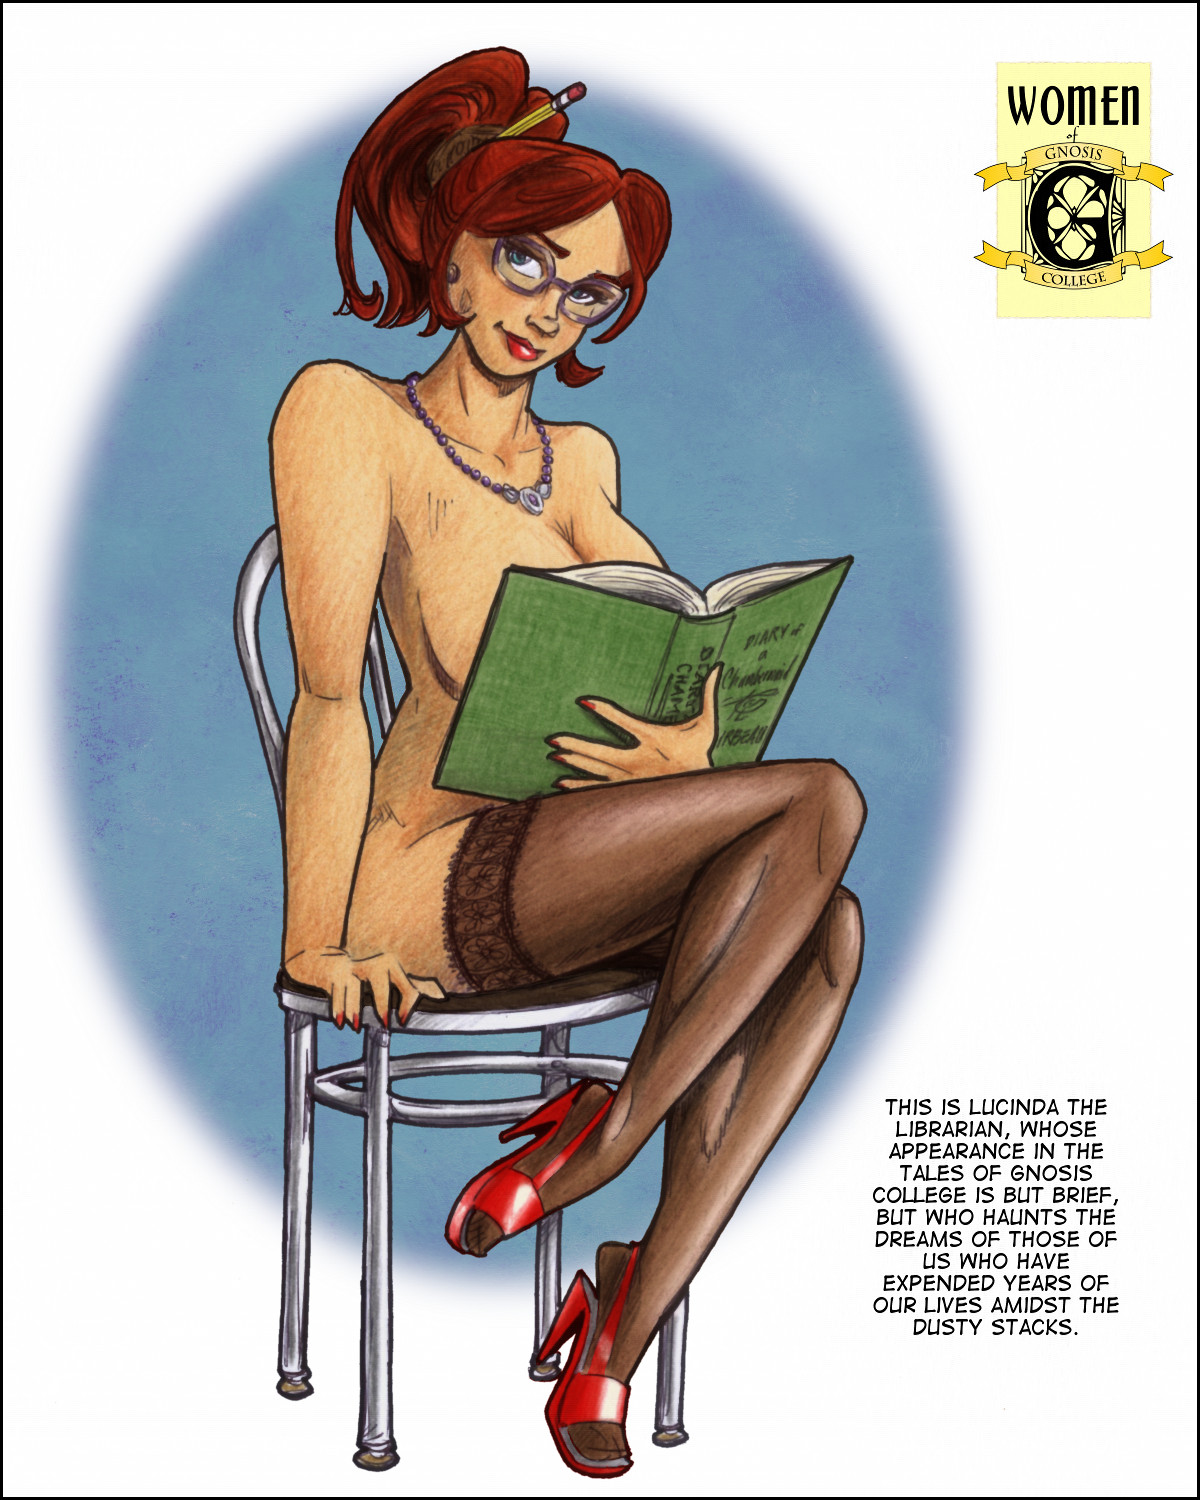 Lucinda the Librarian poses naked but for stockings and a book covering her modesty.